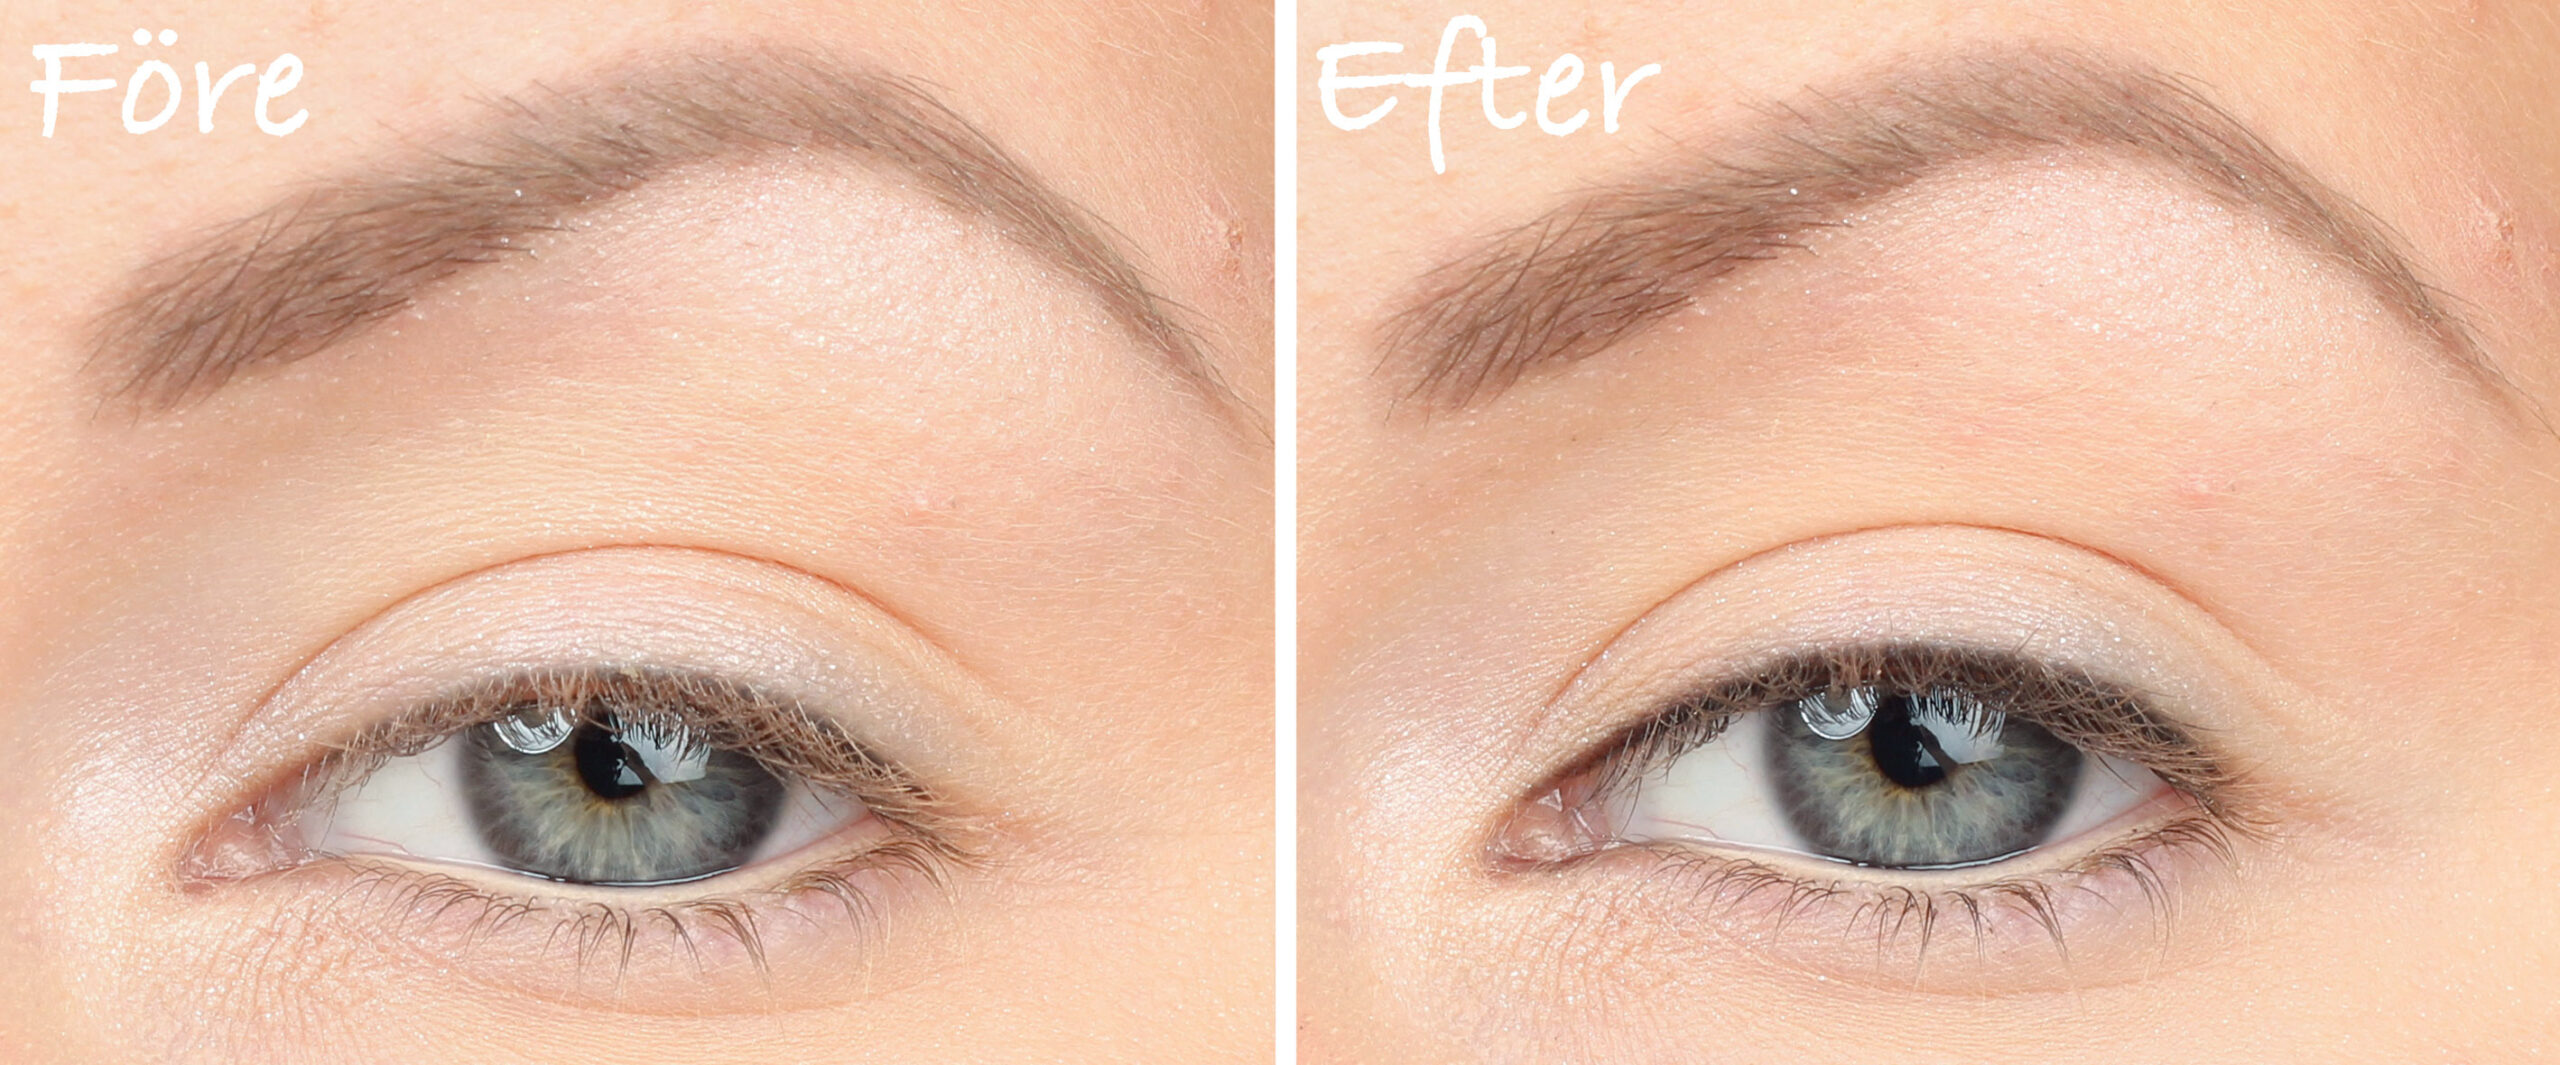 French marking / Lashliner before and after